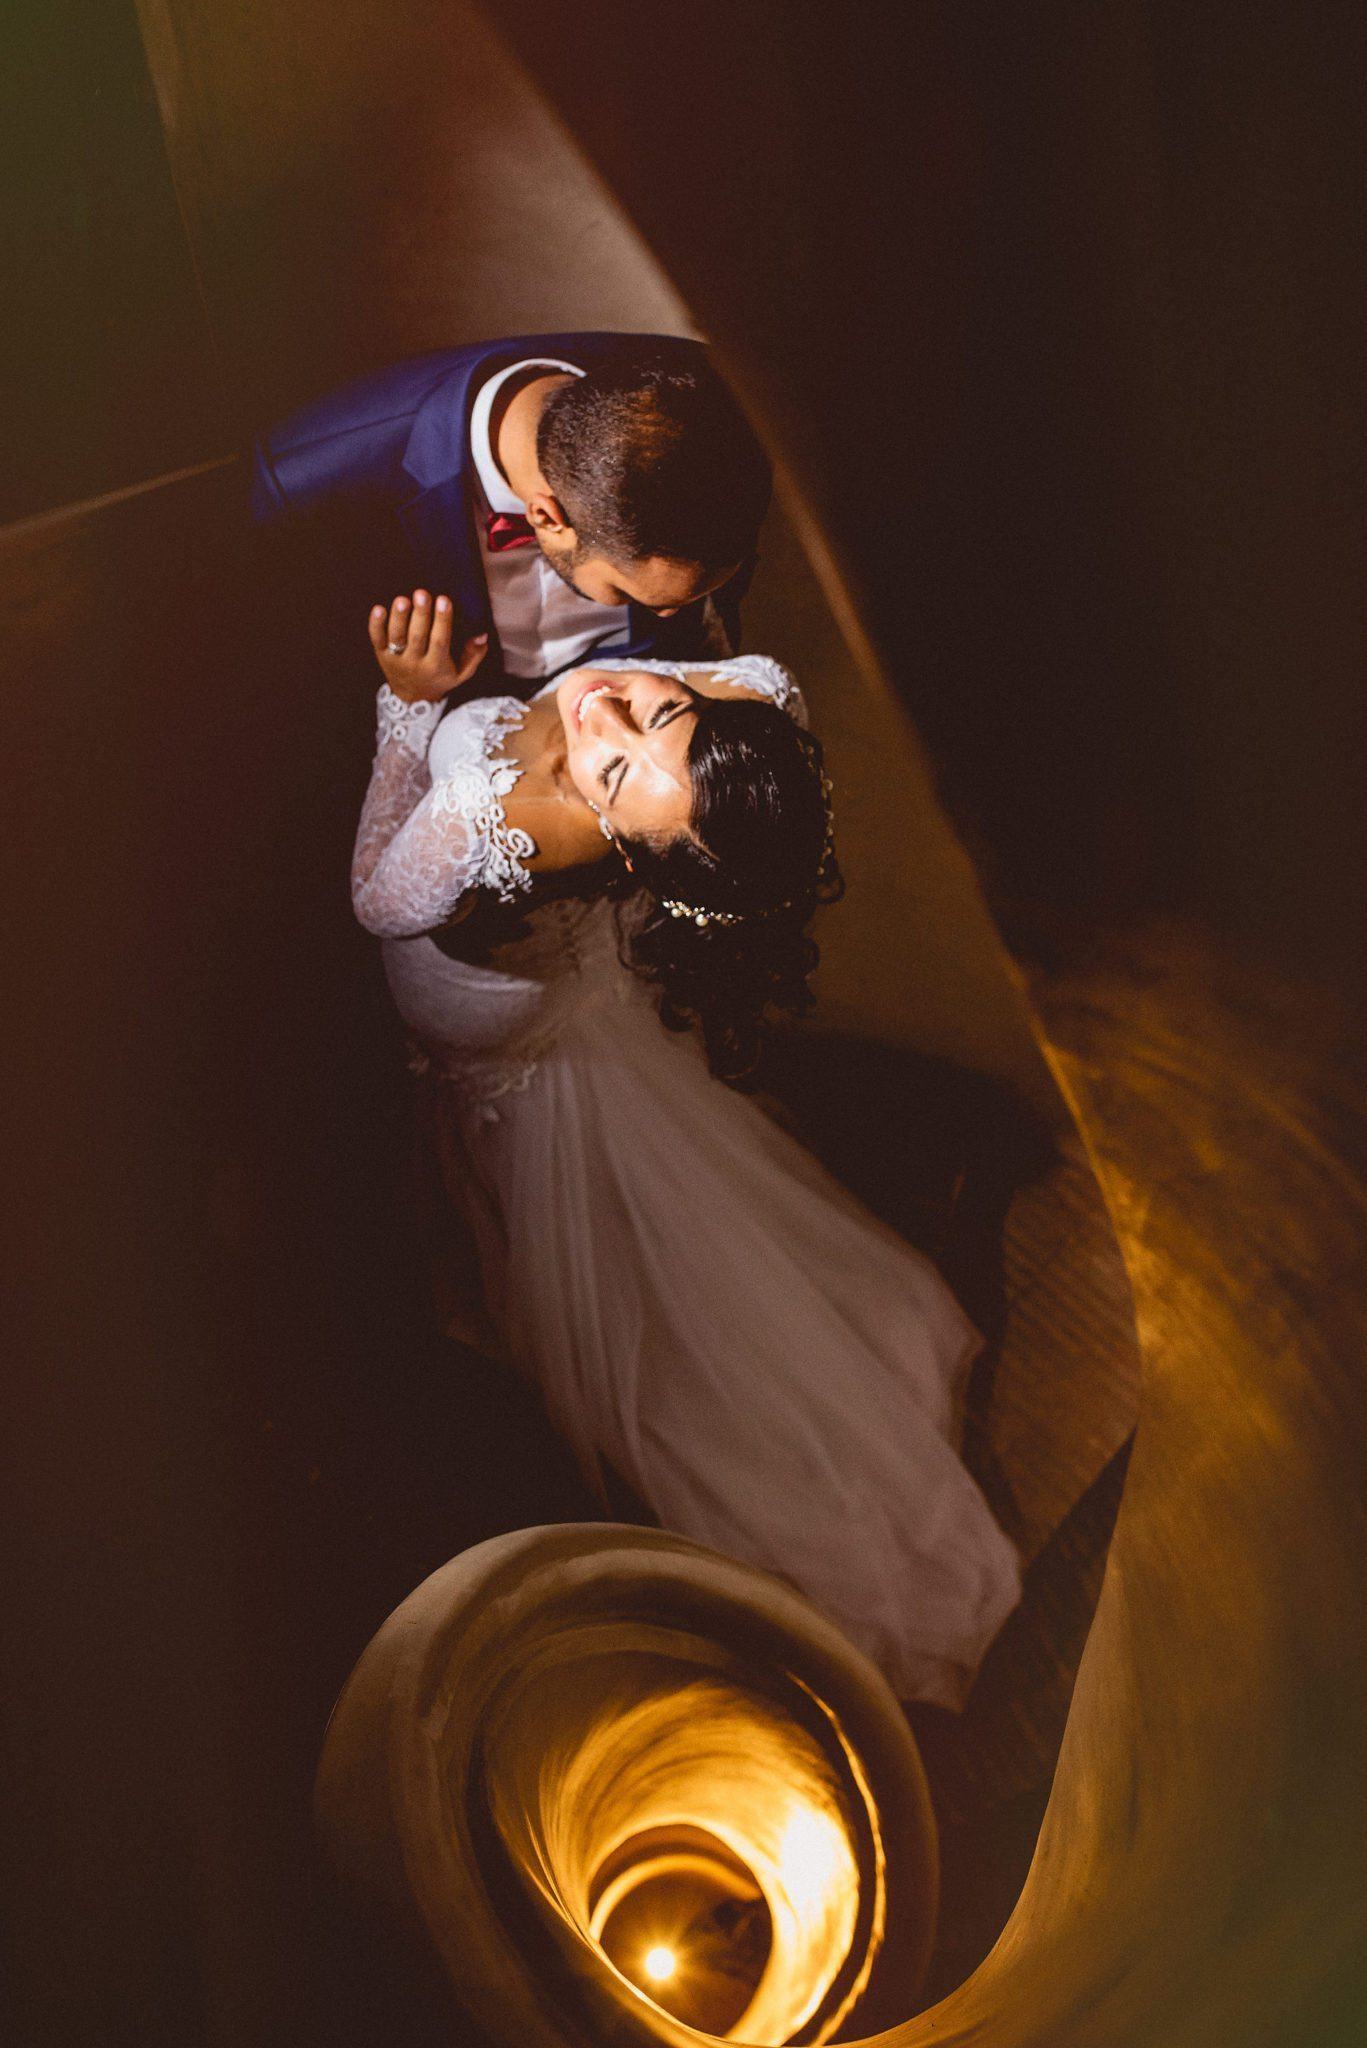 The glamorous couple hold each other close on the spiral staircase and are photographed from above looking down